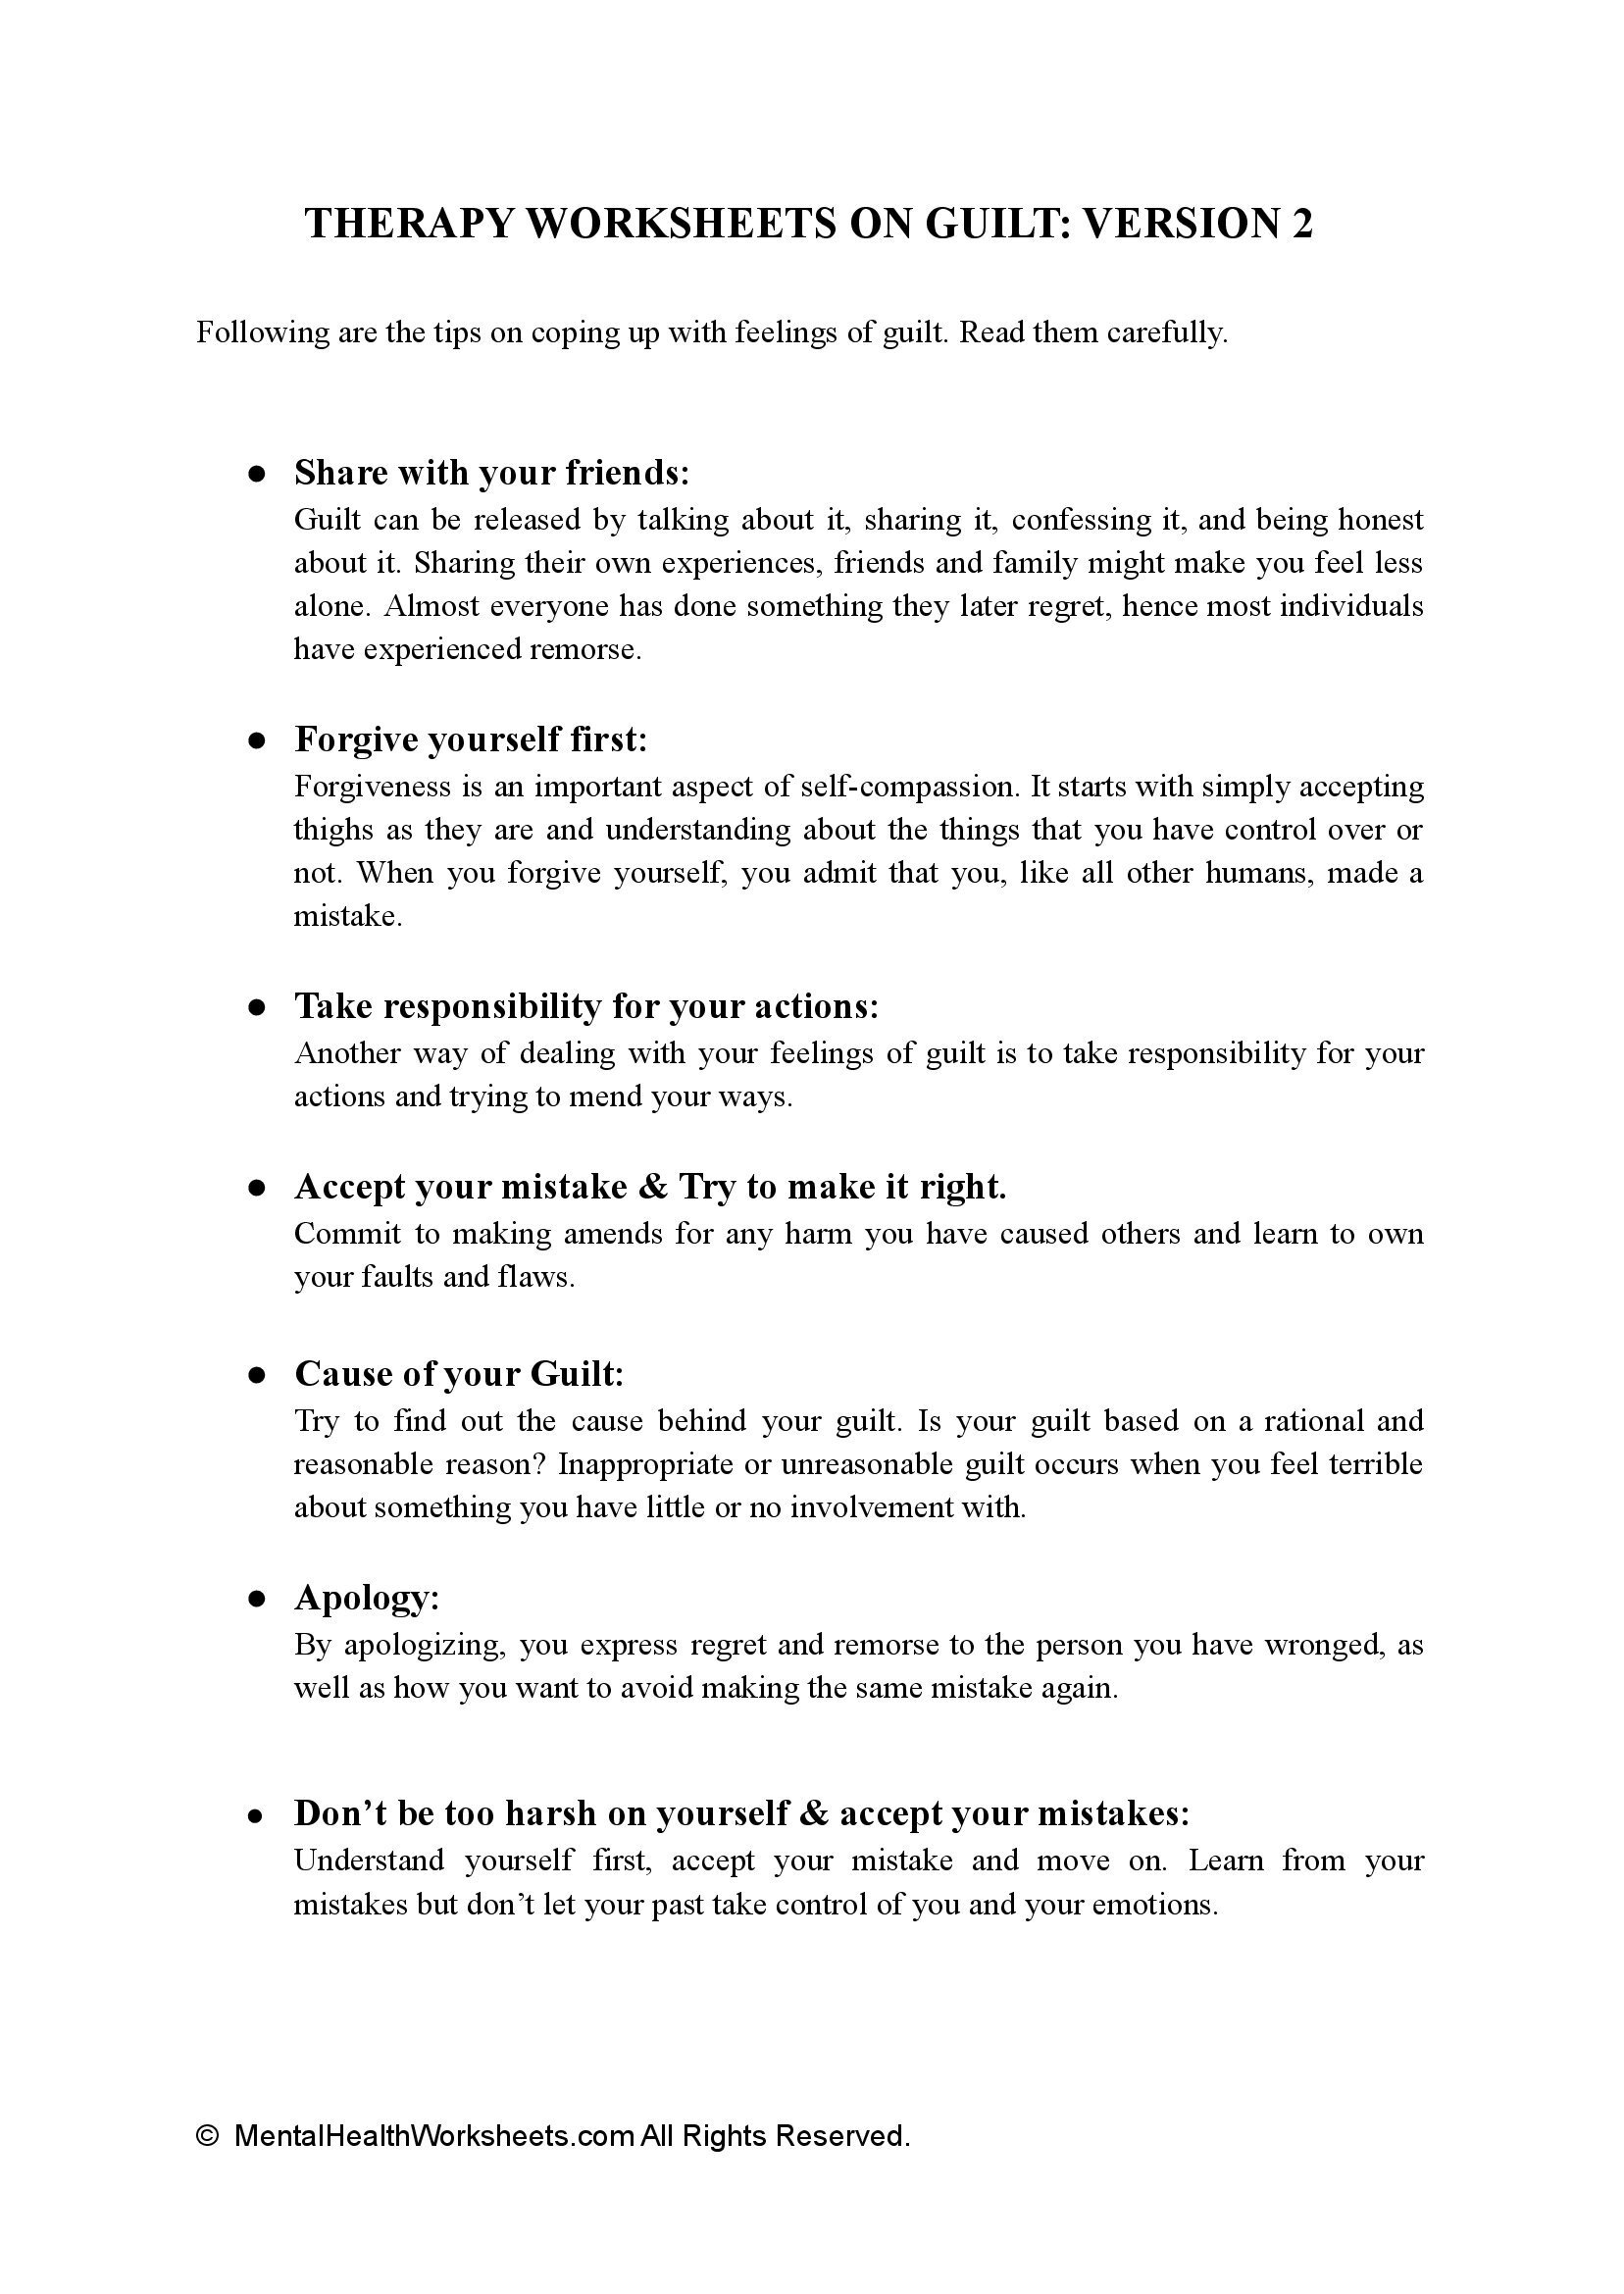 THERAPY WORKSHEETS ON GUILT: VERSION 2